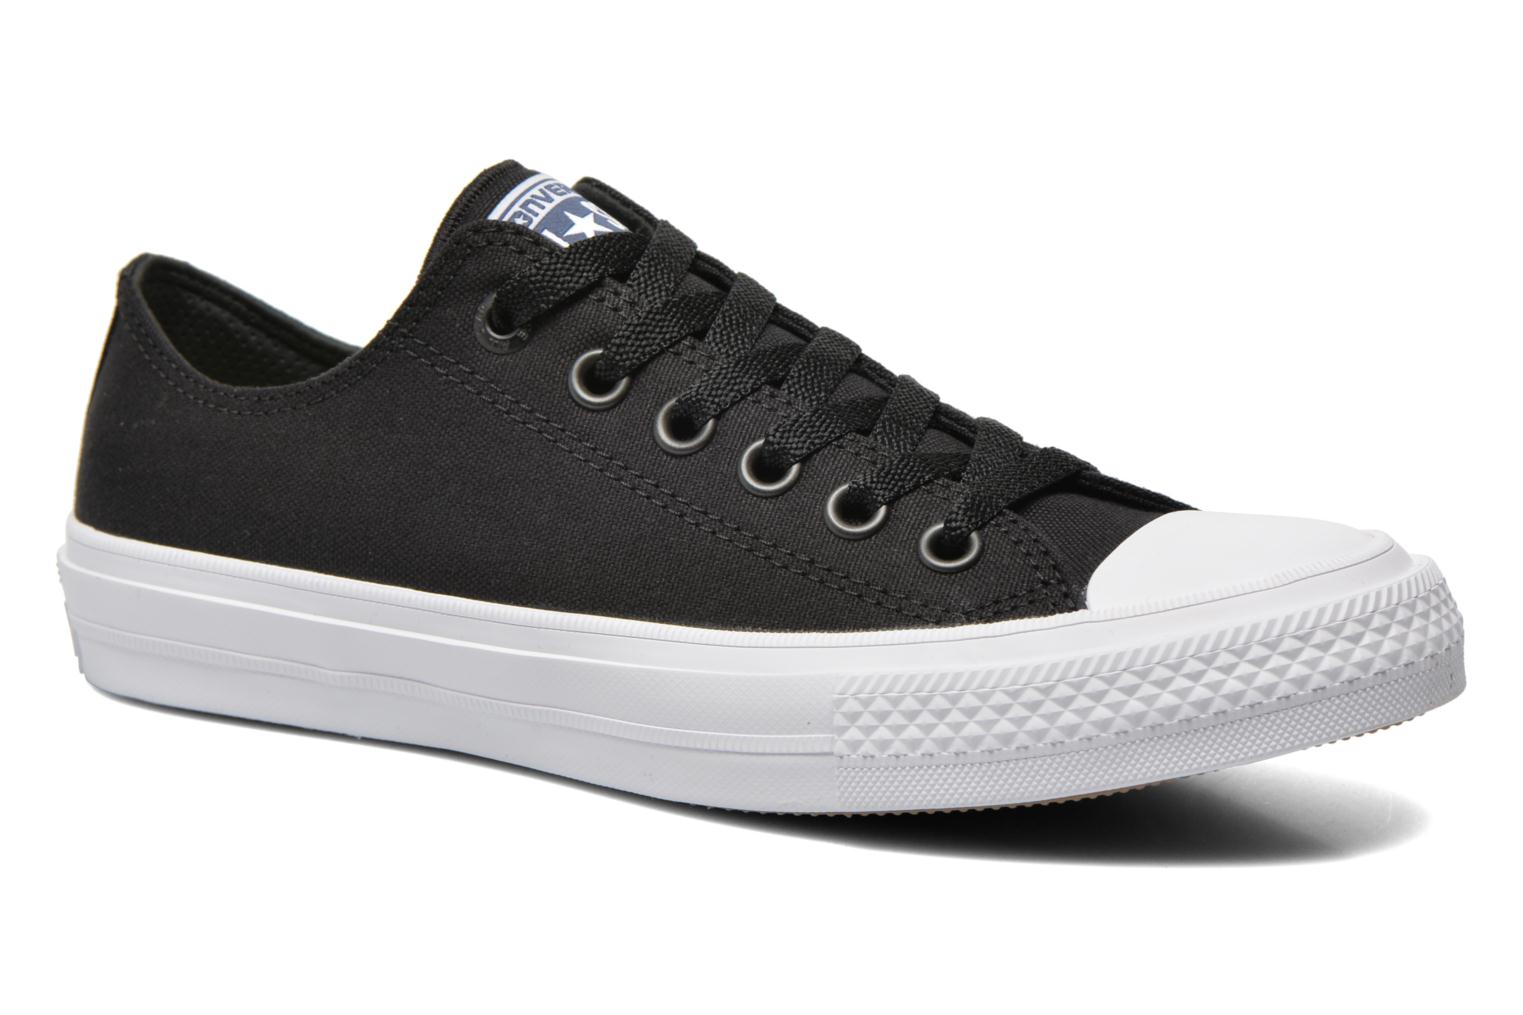 Baskets Converse Chuck Taylor All Star II Ox M Noir vue détail/paire